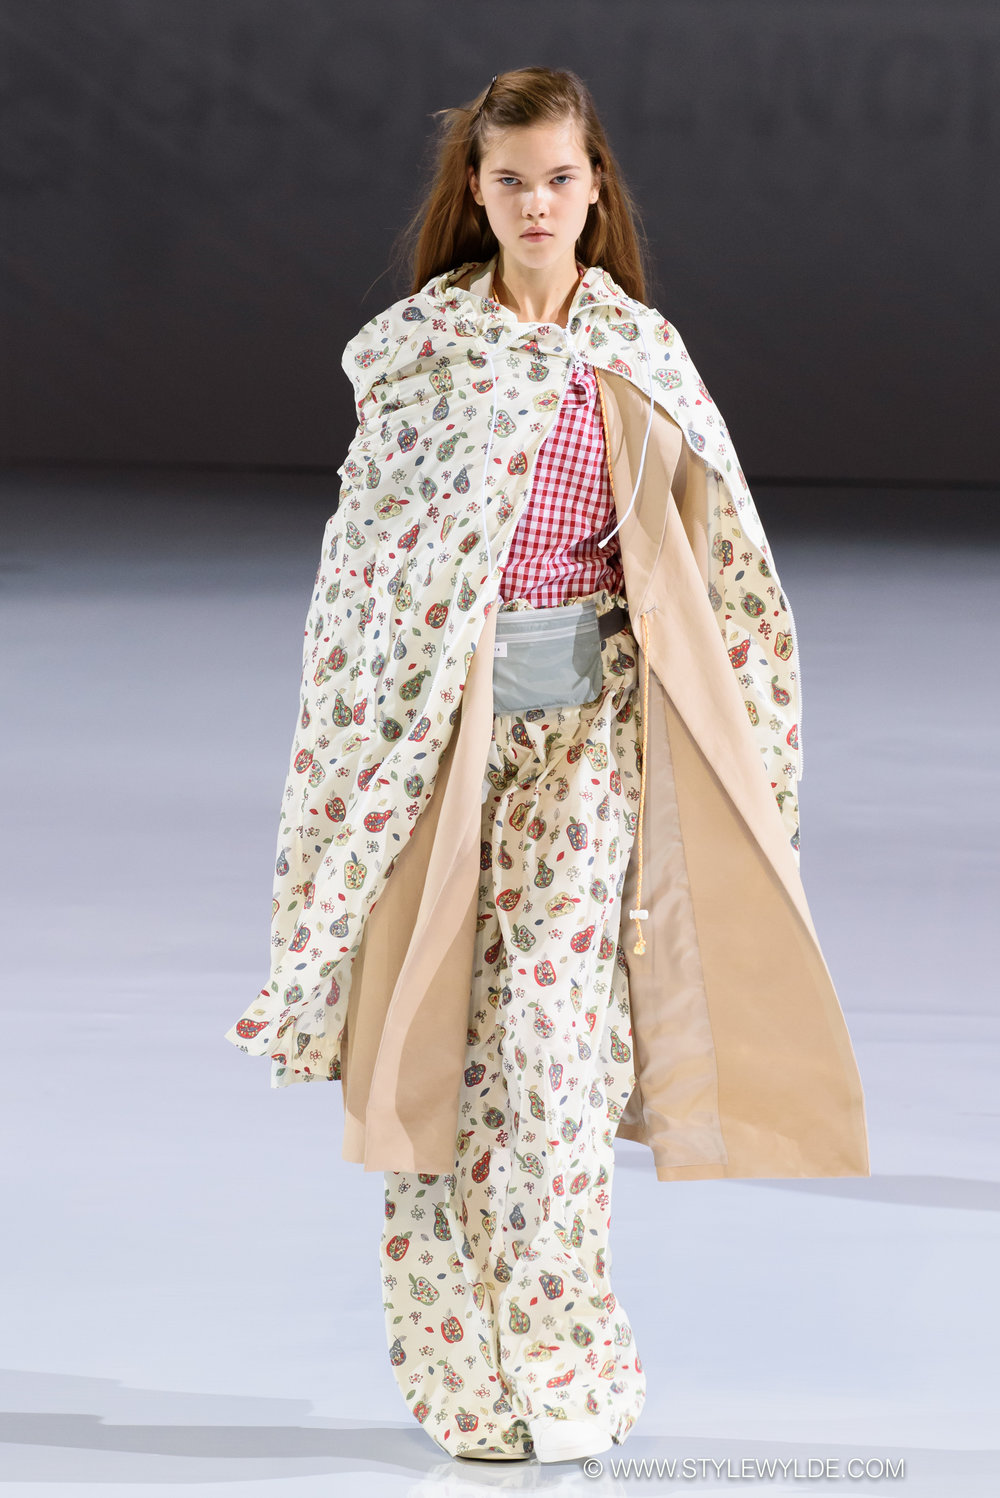 PONCHO POWER! - Charming prints, clever design features, and true wearability highlighted the Global Work Spring 2018 collection, and reminded us of how great